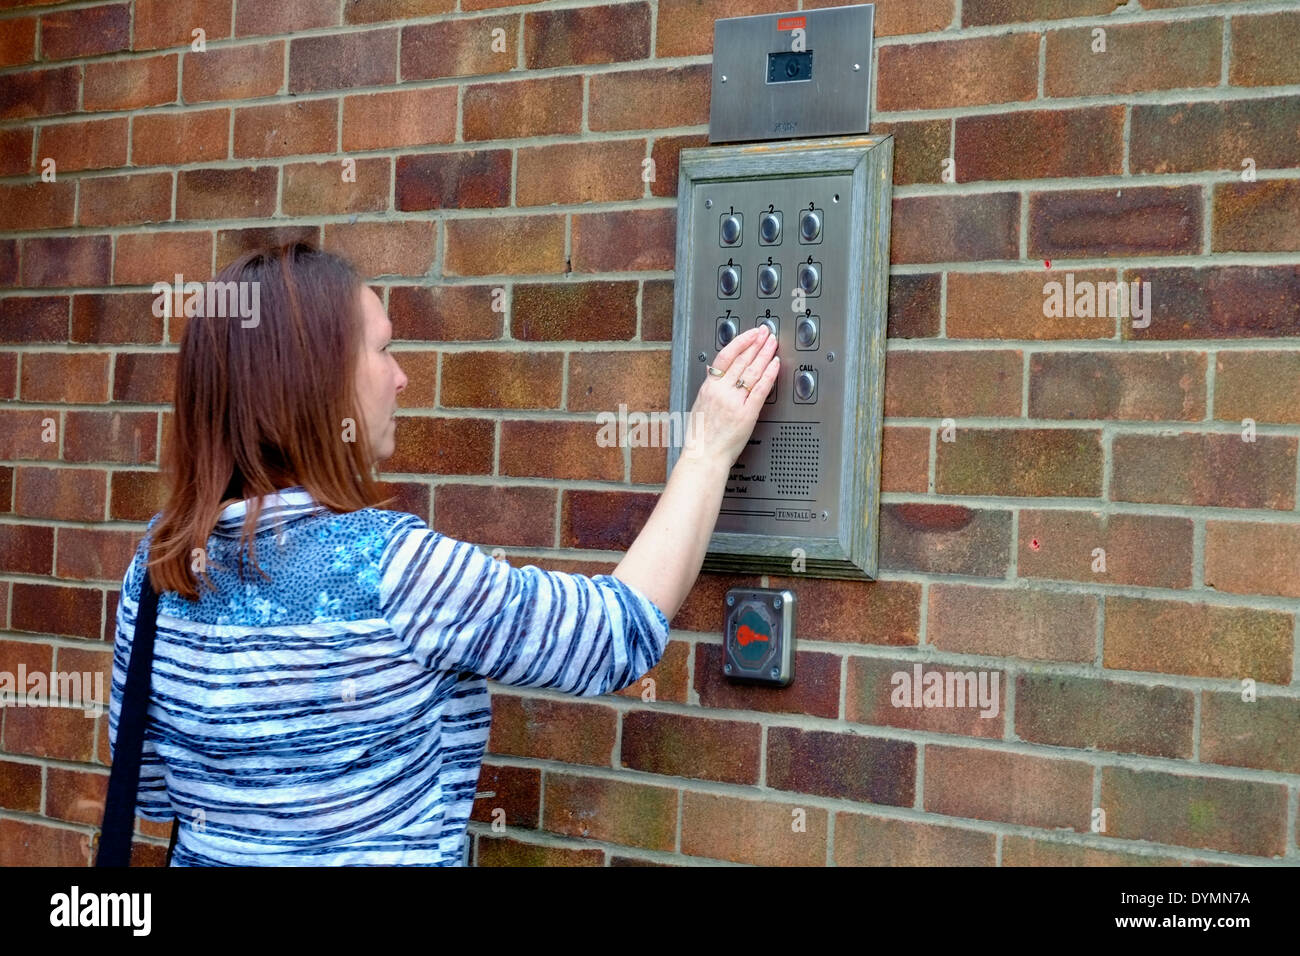 A Middle Aged Woman Using A Tunstall Secure Door Entry Control